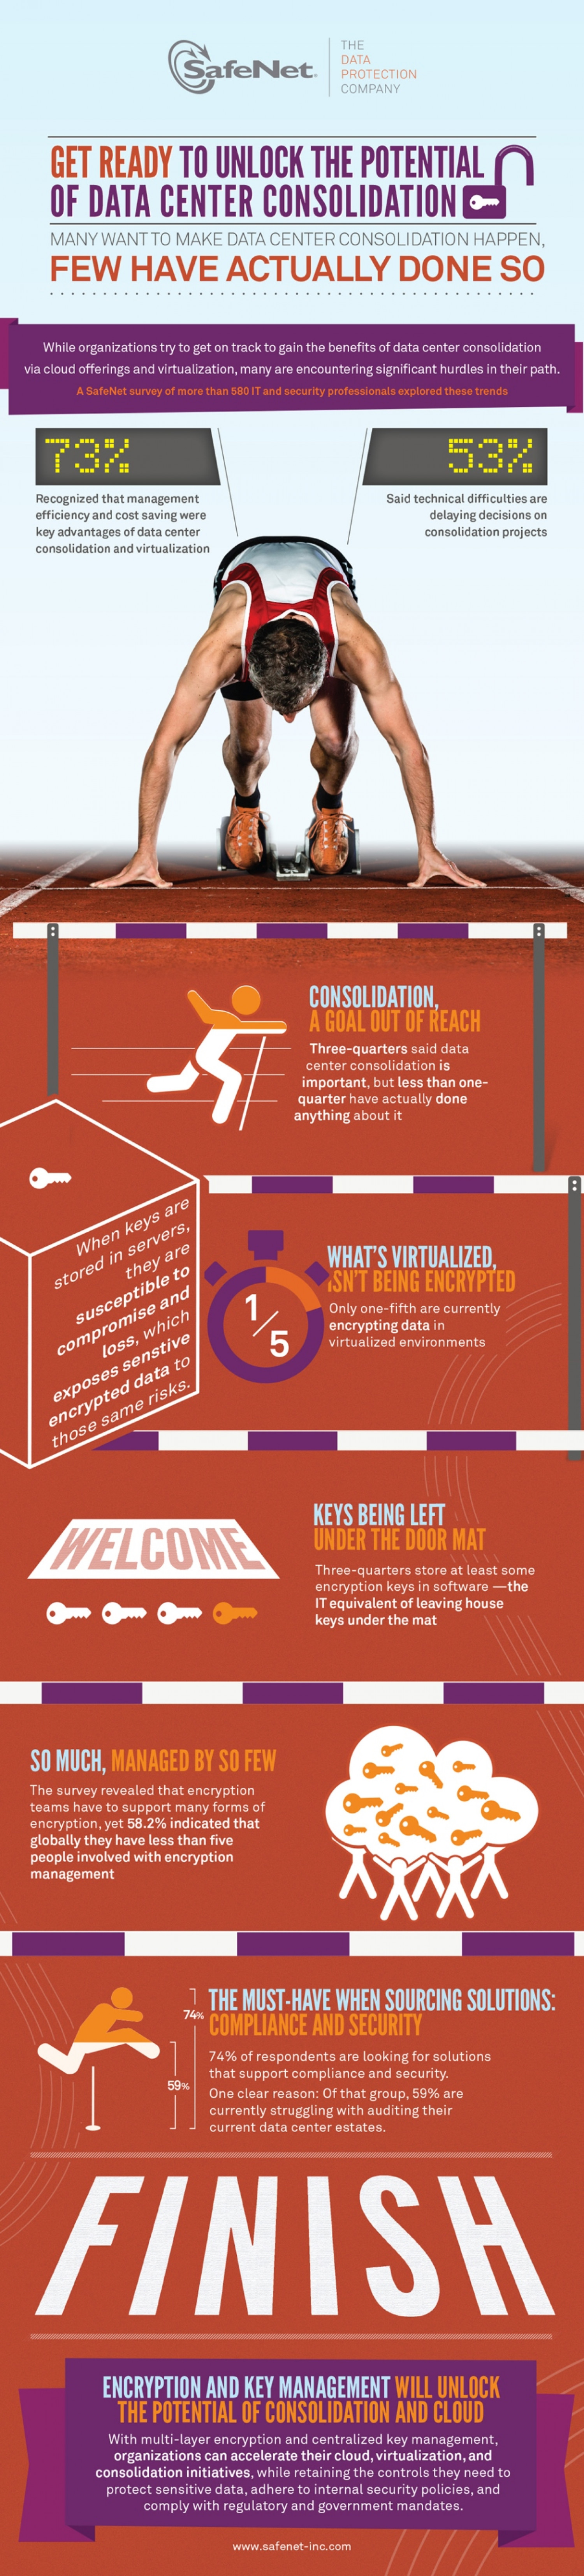 Unlock the Potential of Data Center Consolidation Infographic